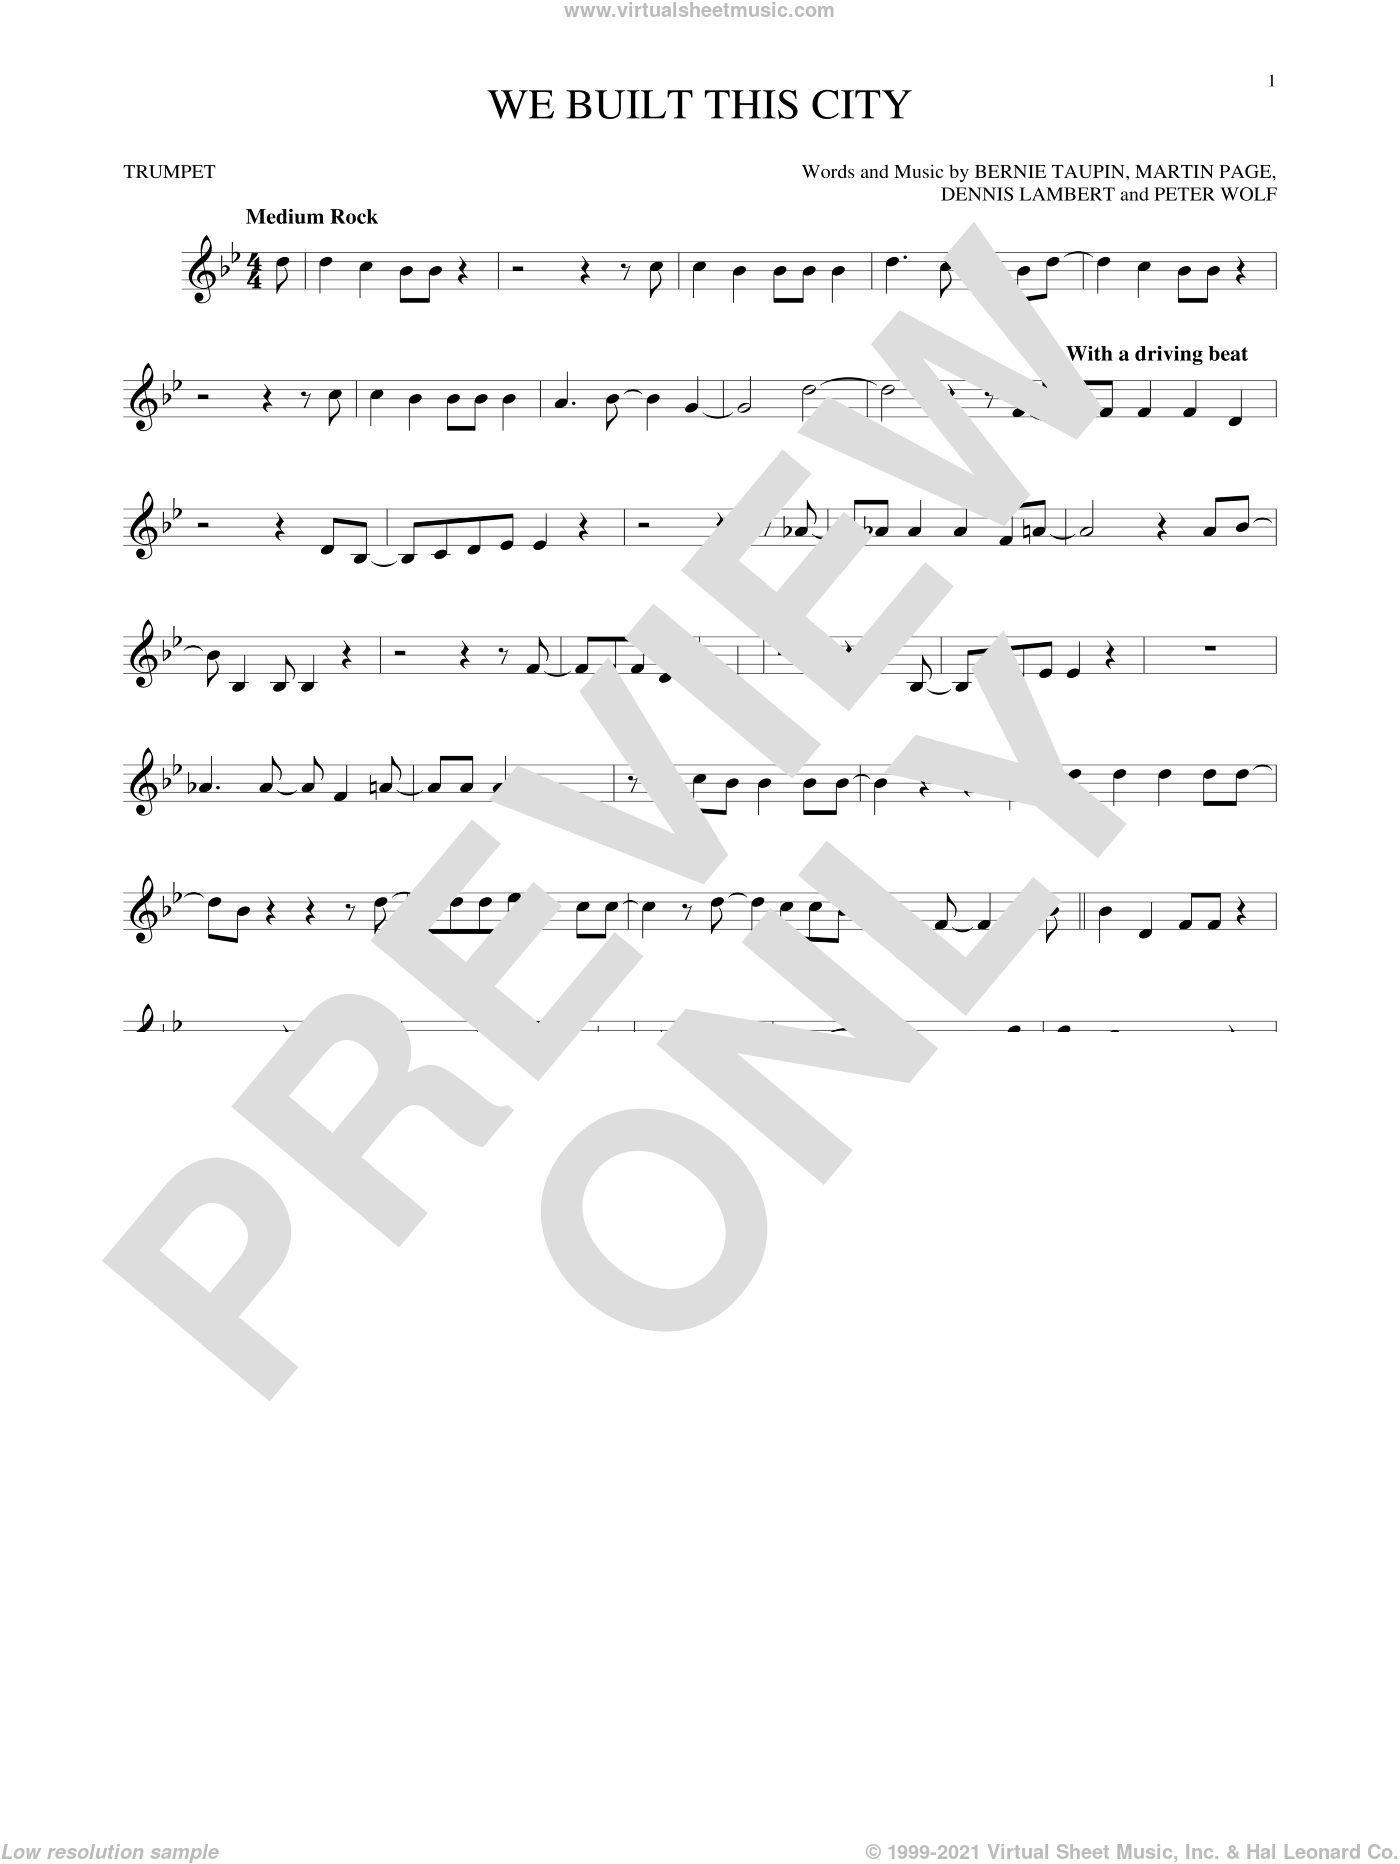 We Built This City sheet music for trumpet solo by Peter Wolf, Starship, Bernie Taupin, Dennis Lambert and Martin George Page. Score Image Preview.